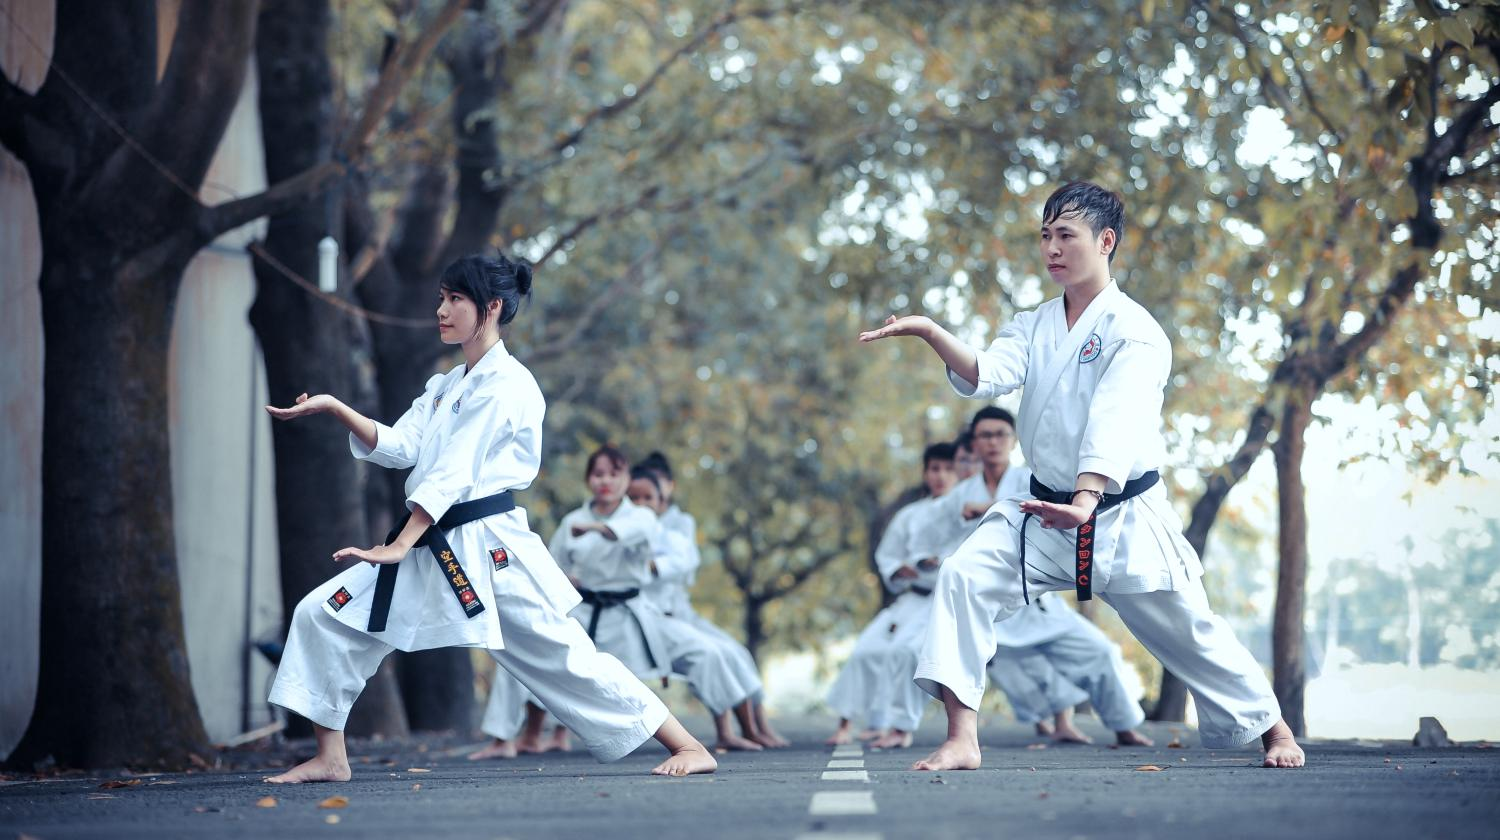 asian teens performing martial arts karate on the street   types of martial arts   different types of martial arts   Featured